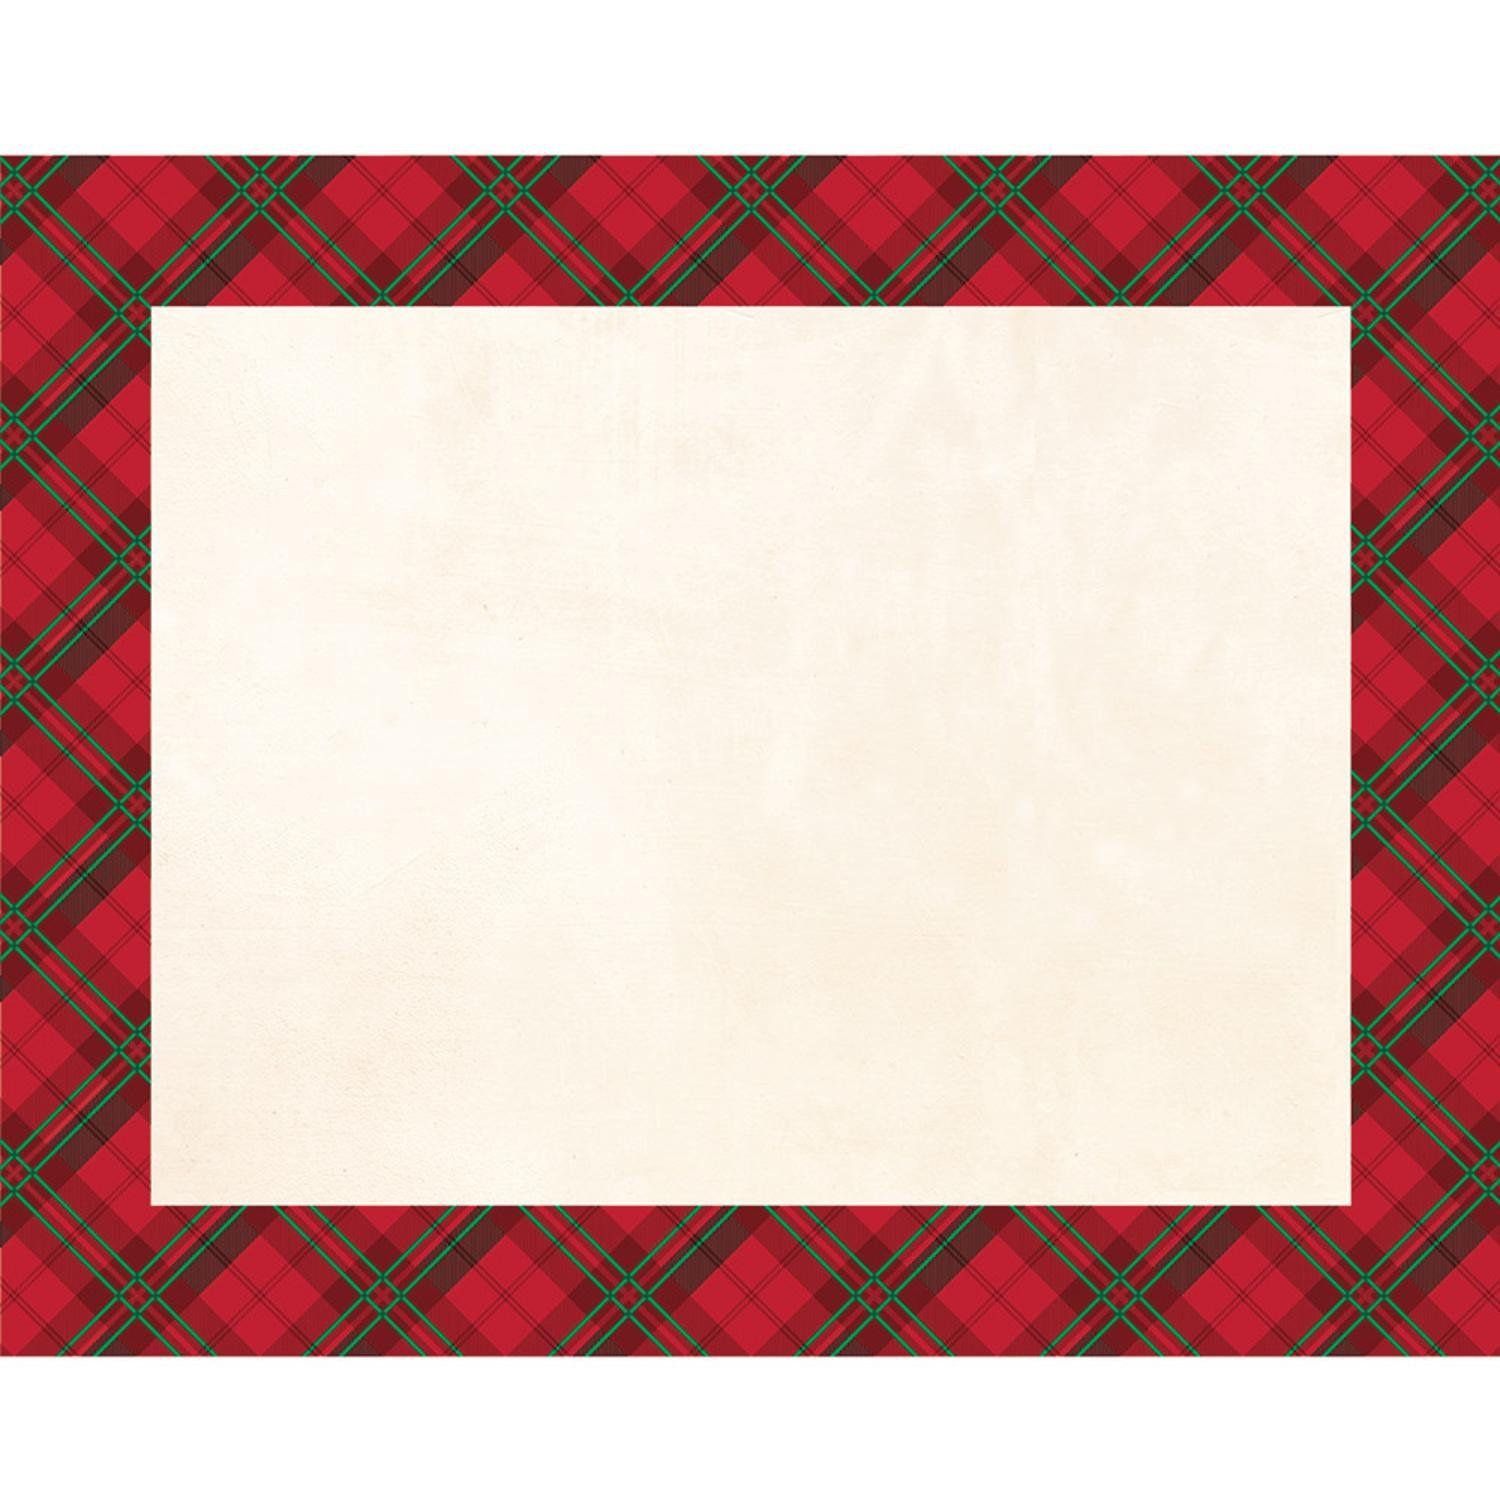 Party Central Club Pack of 144 Ivory and Red Border Decorative Rectangular Table Cover 17''